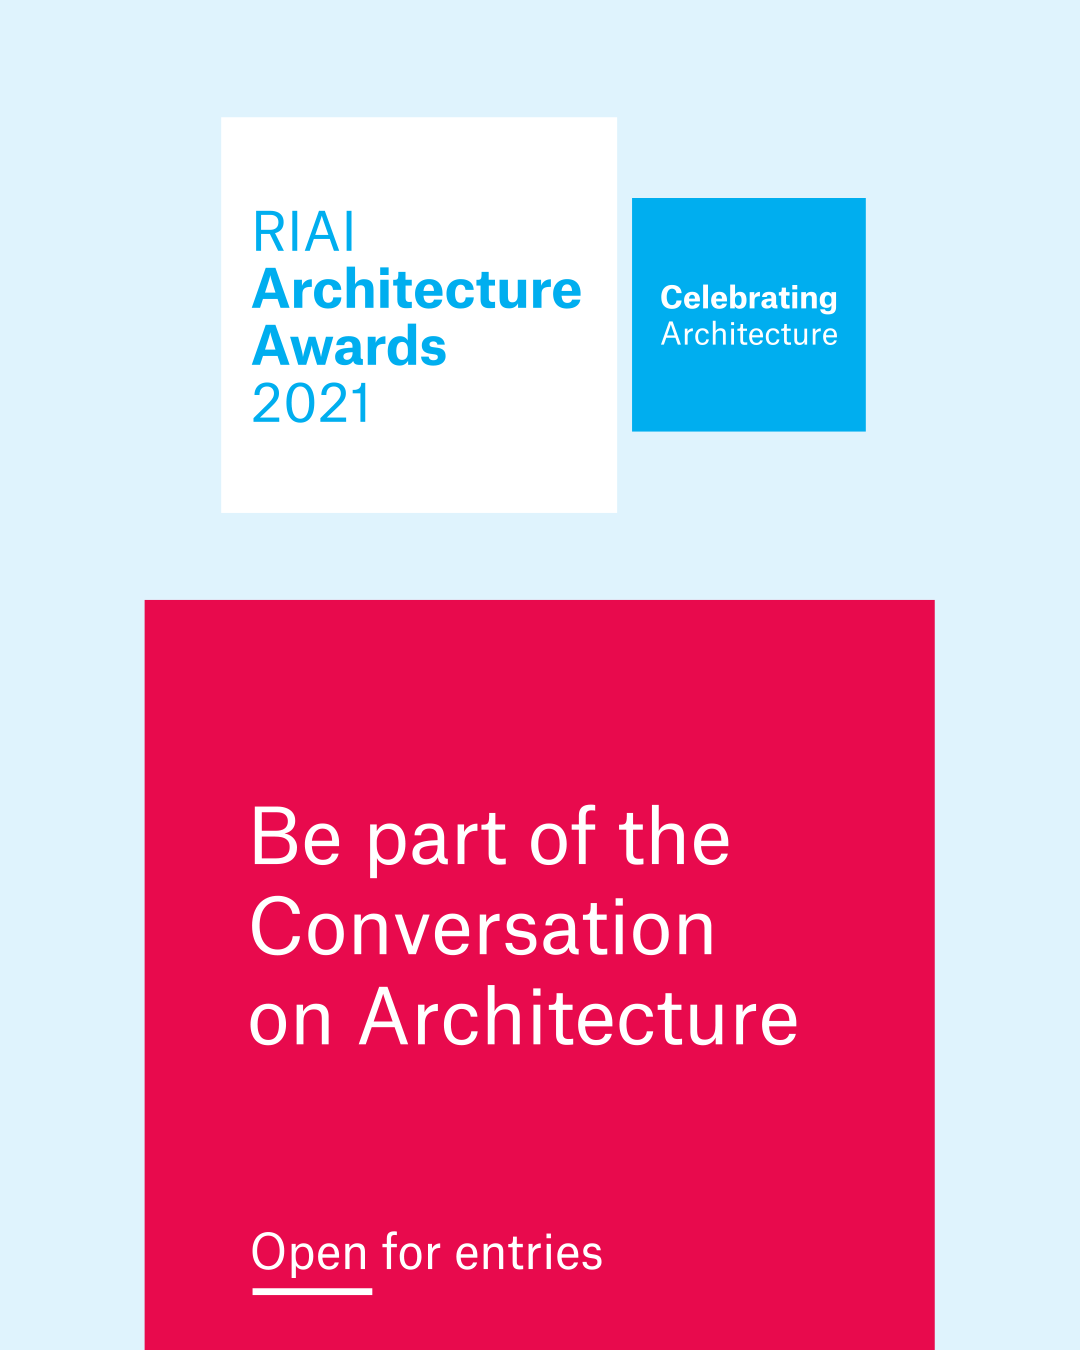 RIAI Architecture Awards 2021